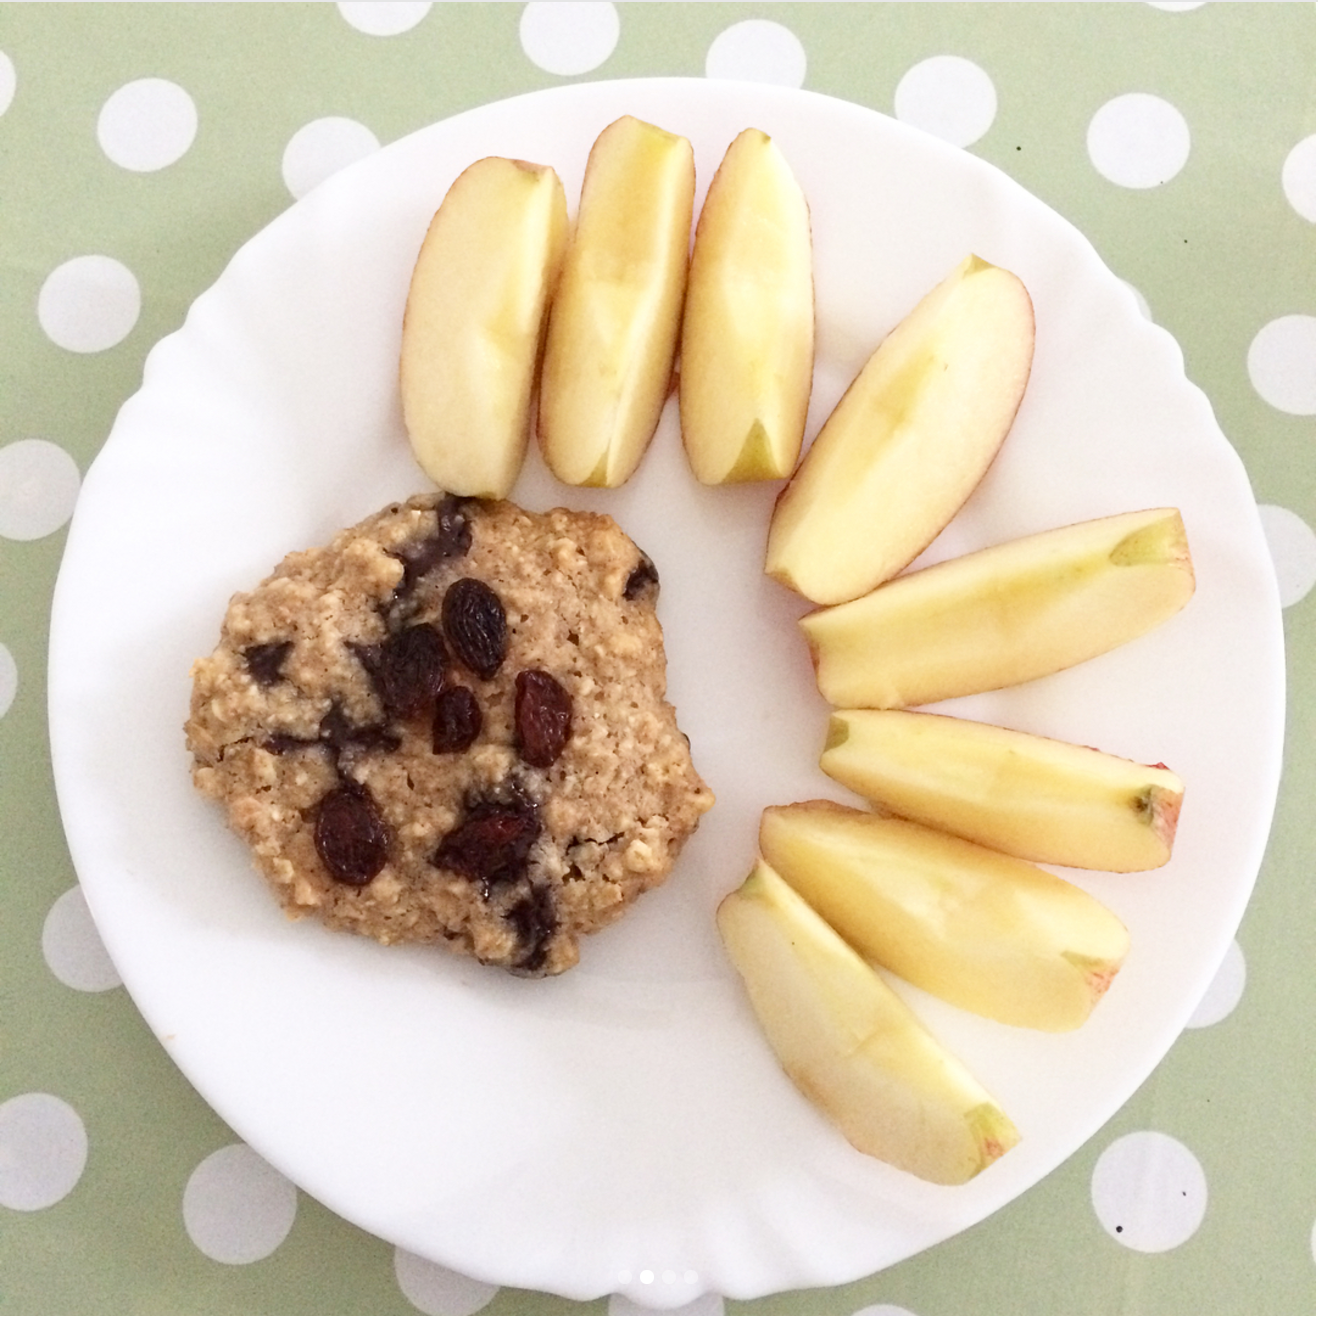 chocolate chip peanut butter oatmeal cookies {with raisins too!} by @emily.ana_recovery